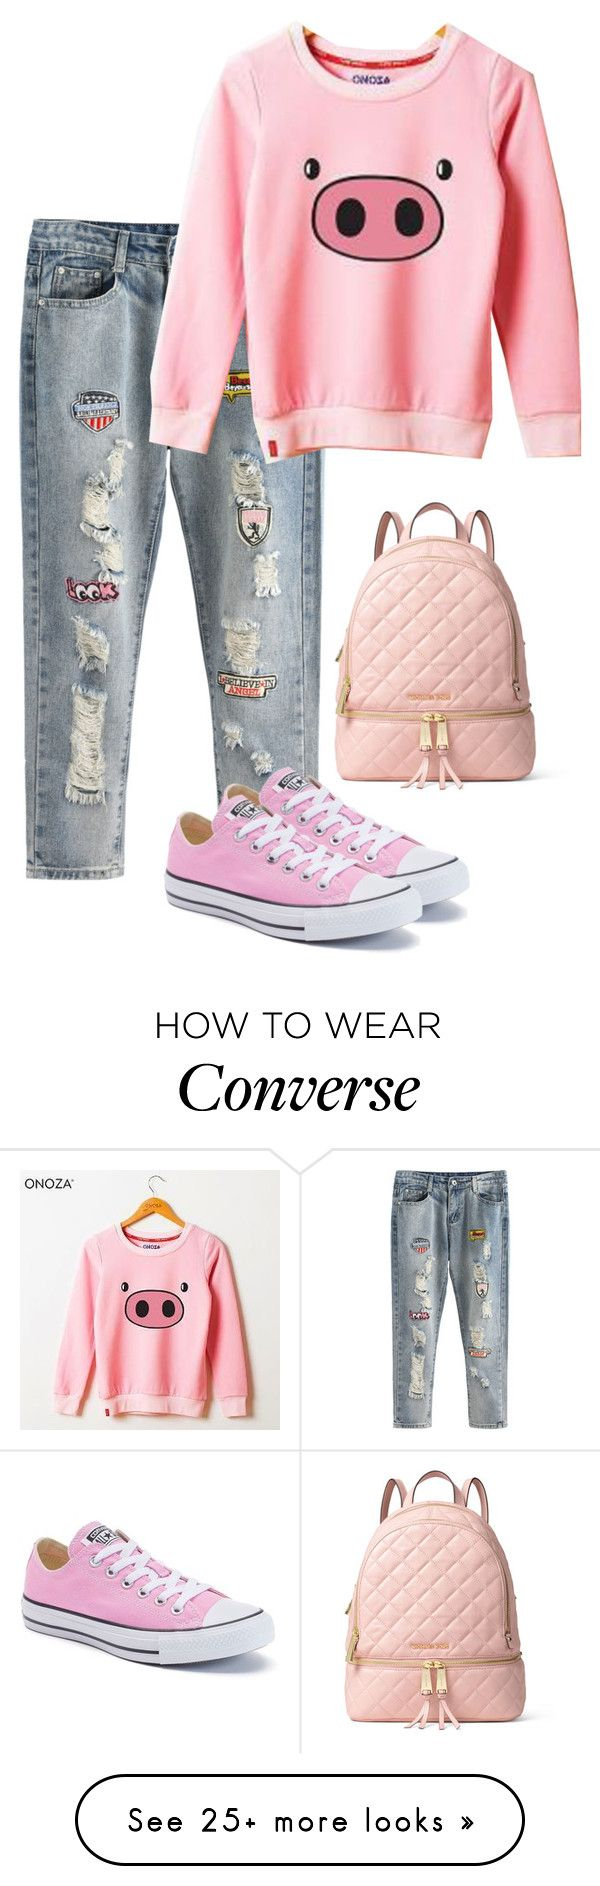 """One of my favorite animals"" by barebear1965 on Polyvore featuring Onoza, Converse and MICHAEL Michael Kors"